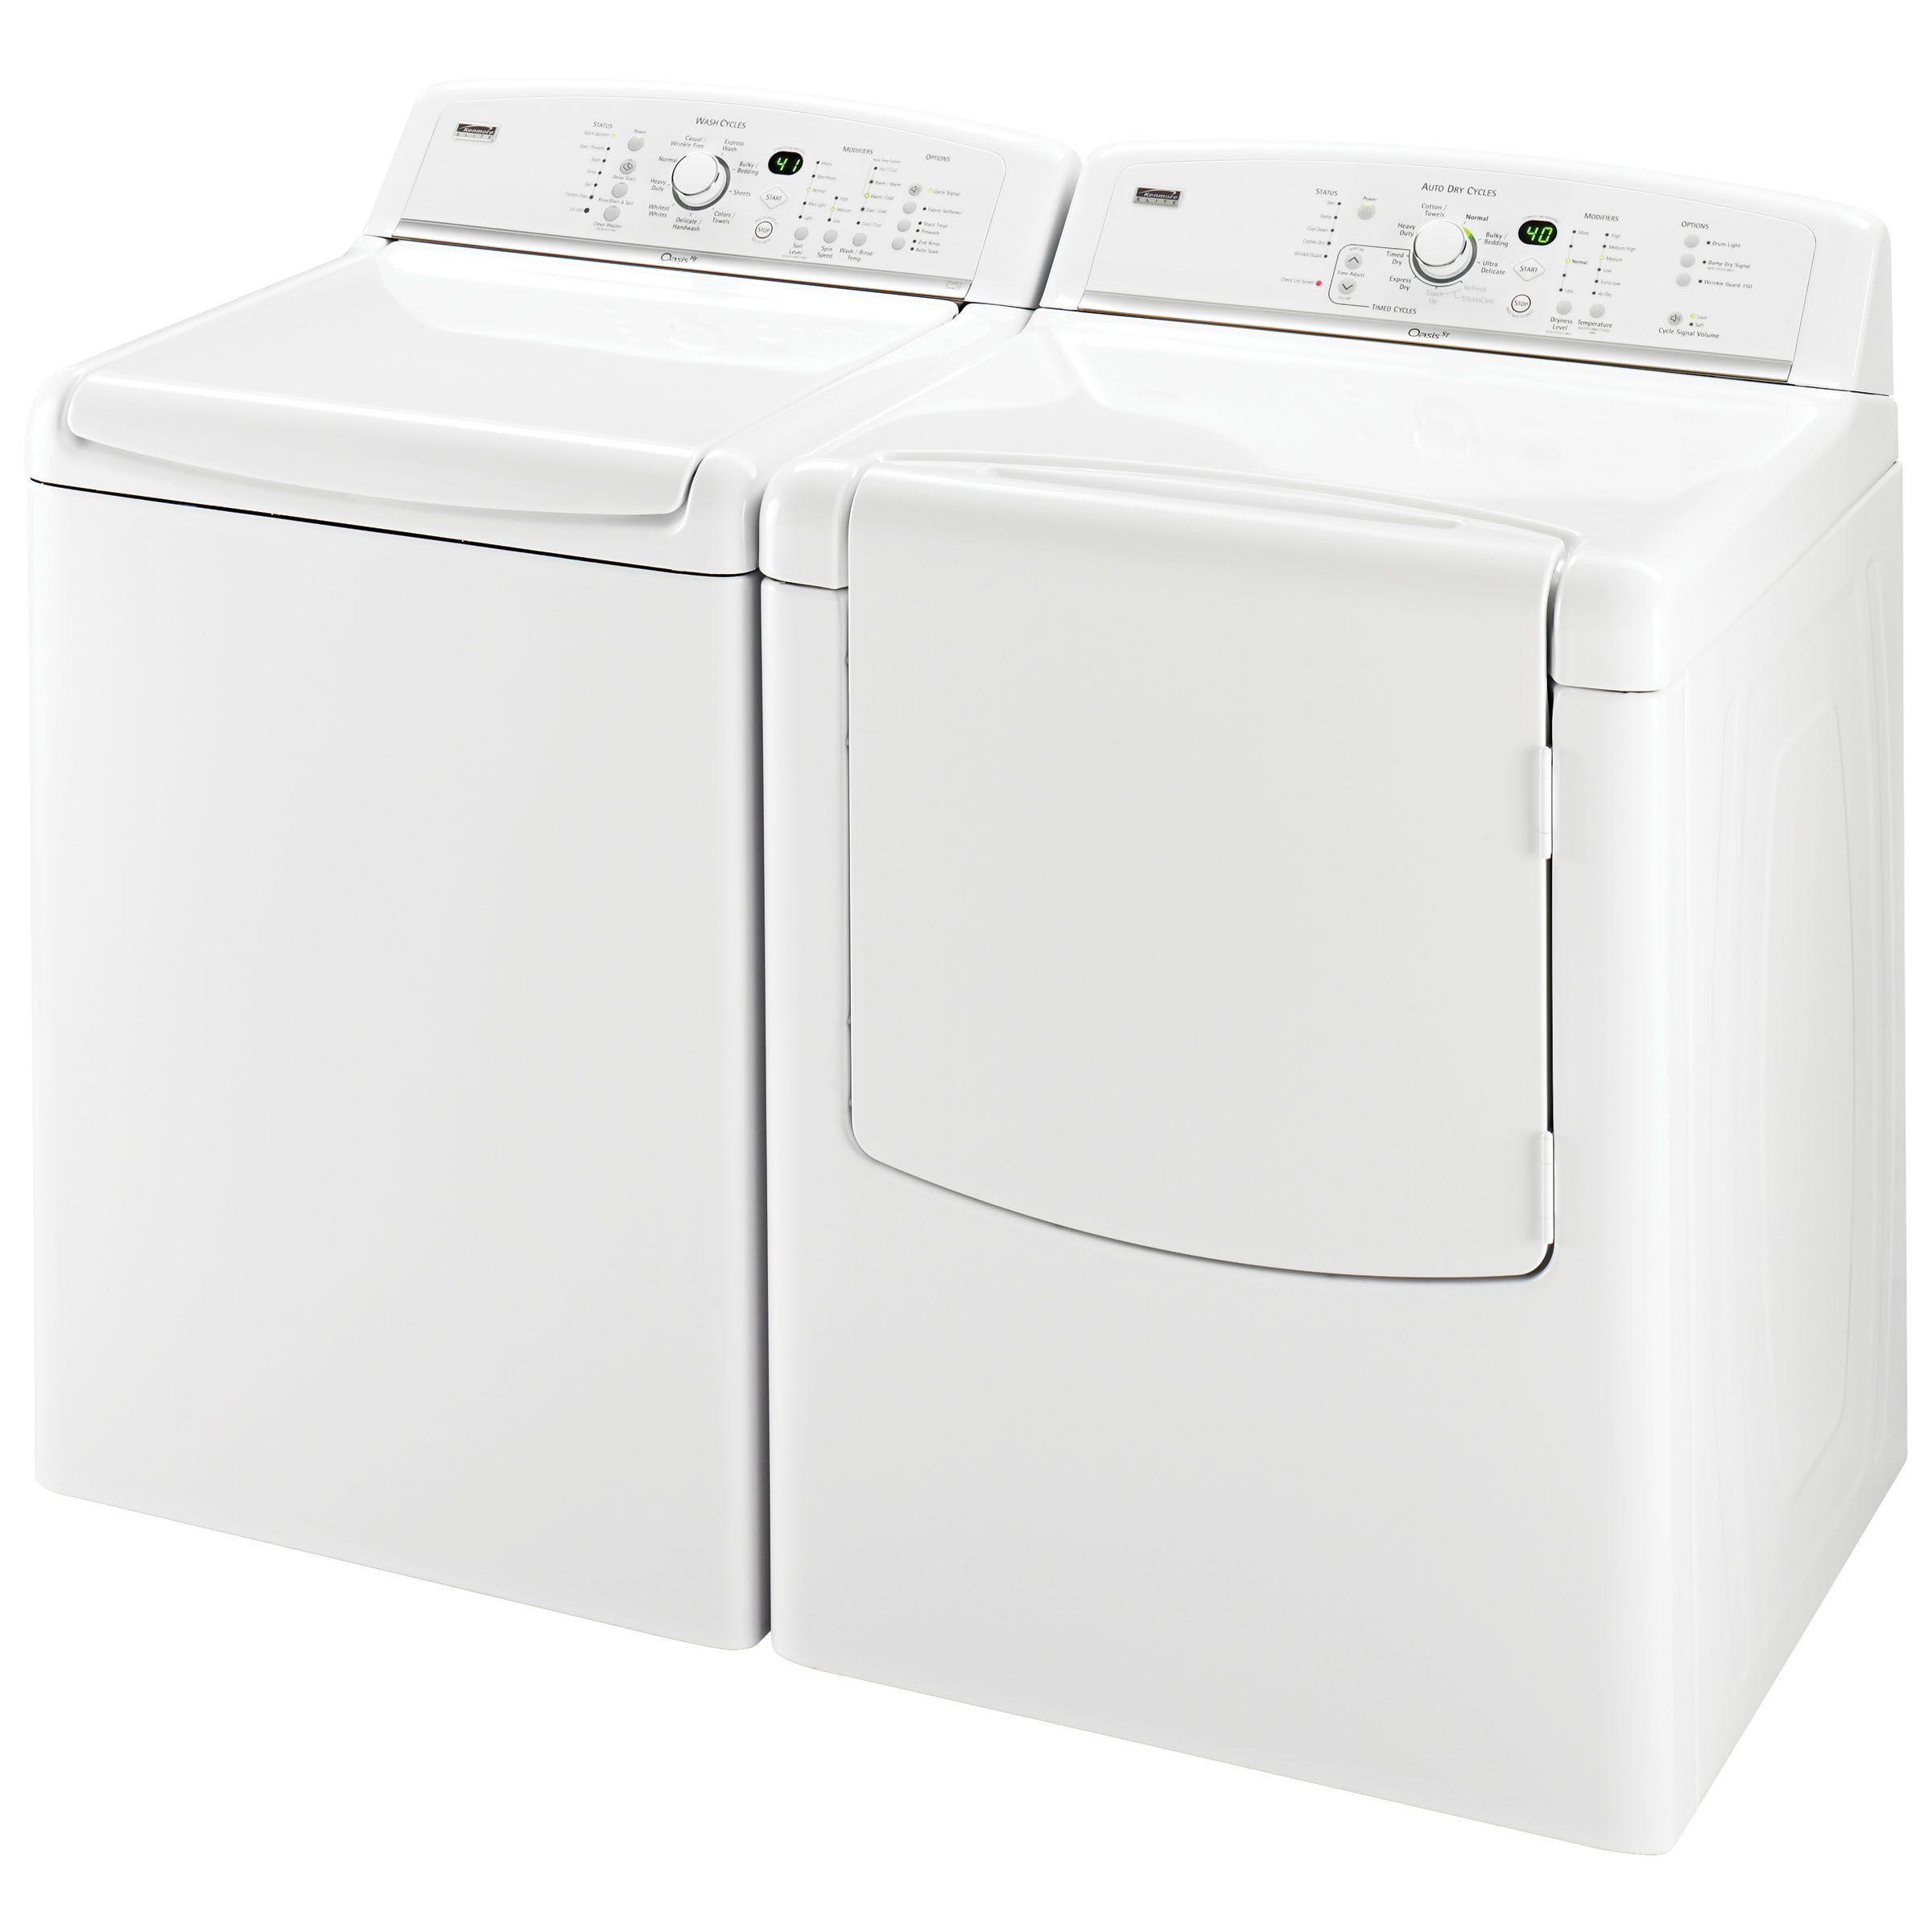 Kenmore Elite Oasis™ HE 4.7 cu. ft. Capacity Top-Load Washer